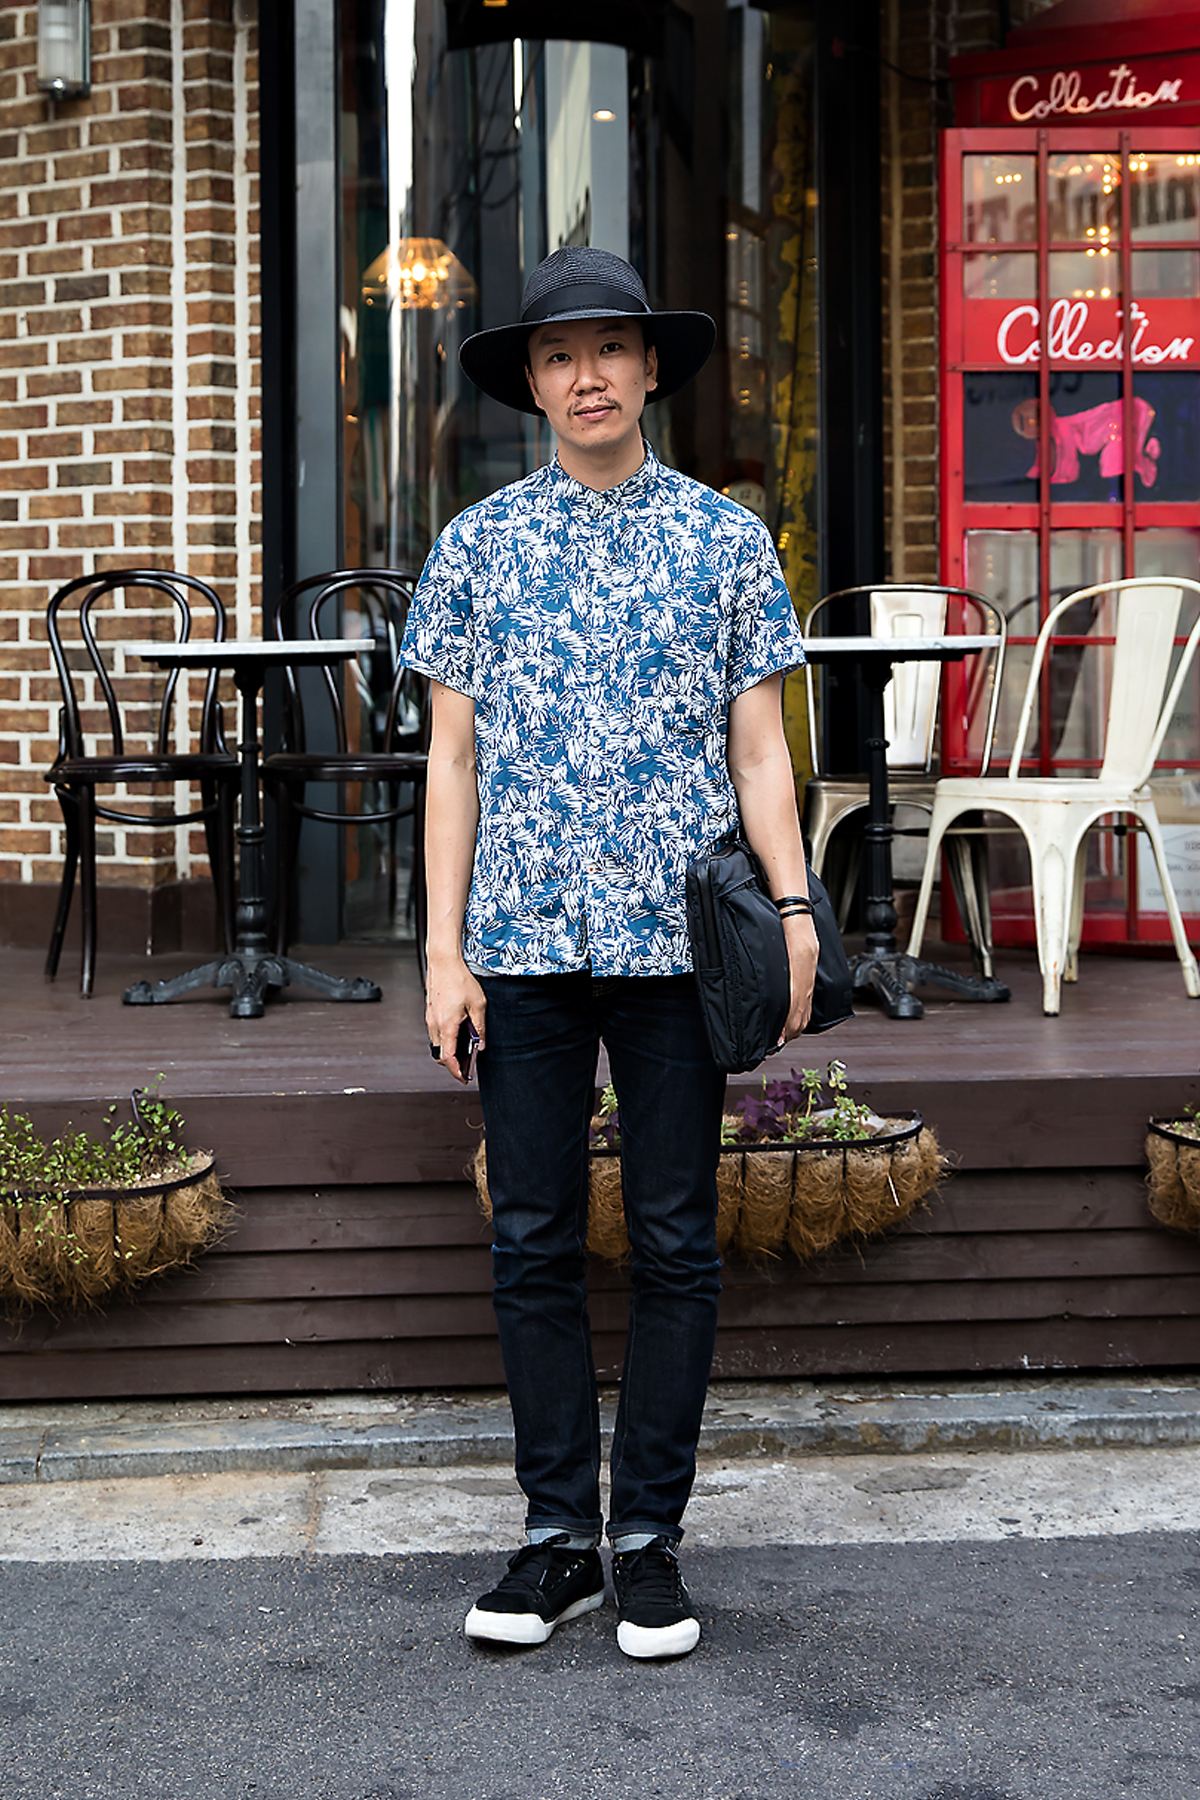 Kim Hwanki, Street Fashion 2017 in Seoul